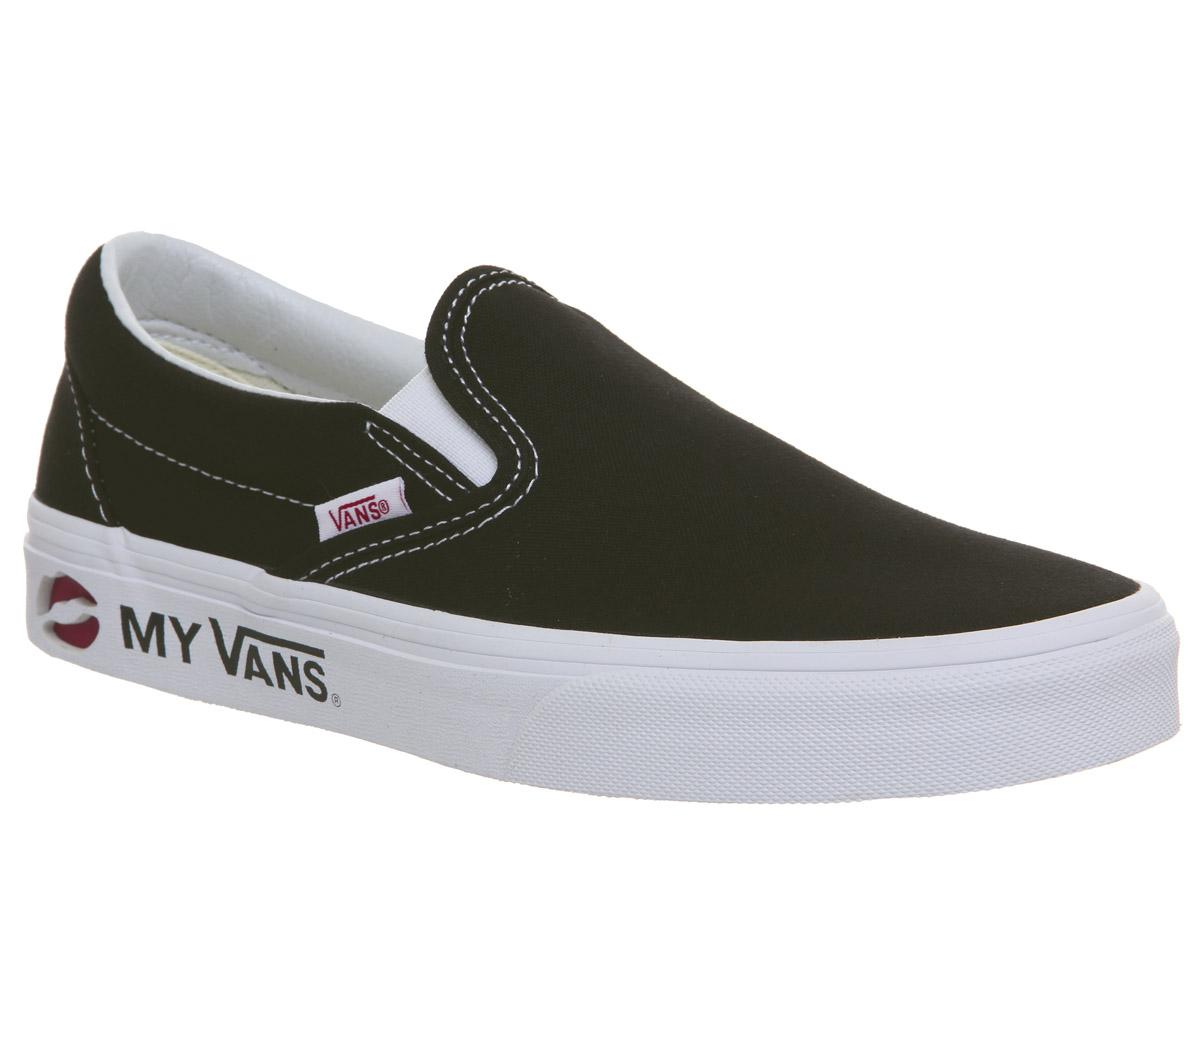 a4f35ed787 Vans Vans Classic Slip On Trainers Kmv Black True White Racing Red ...